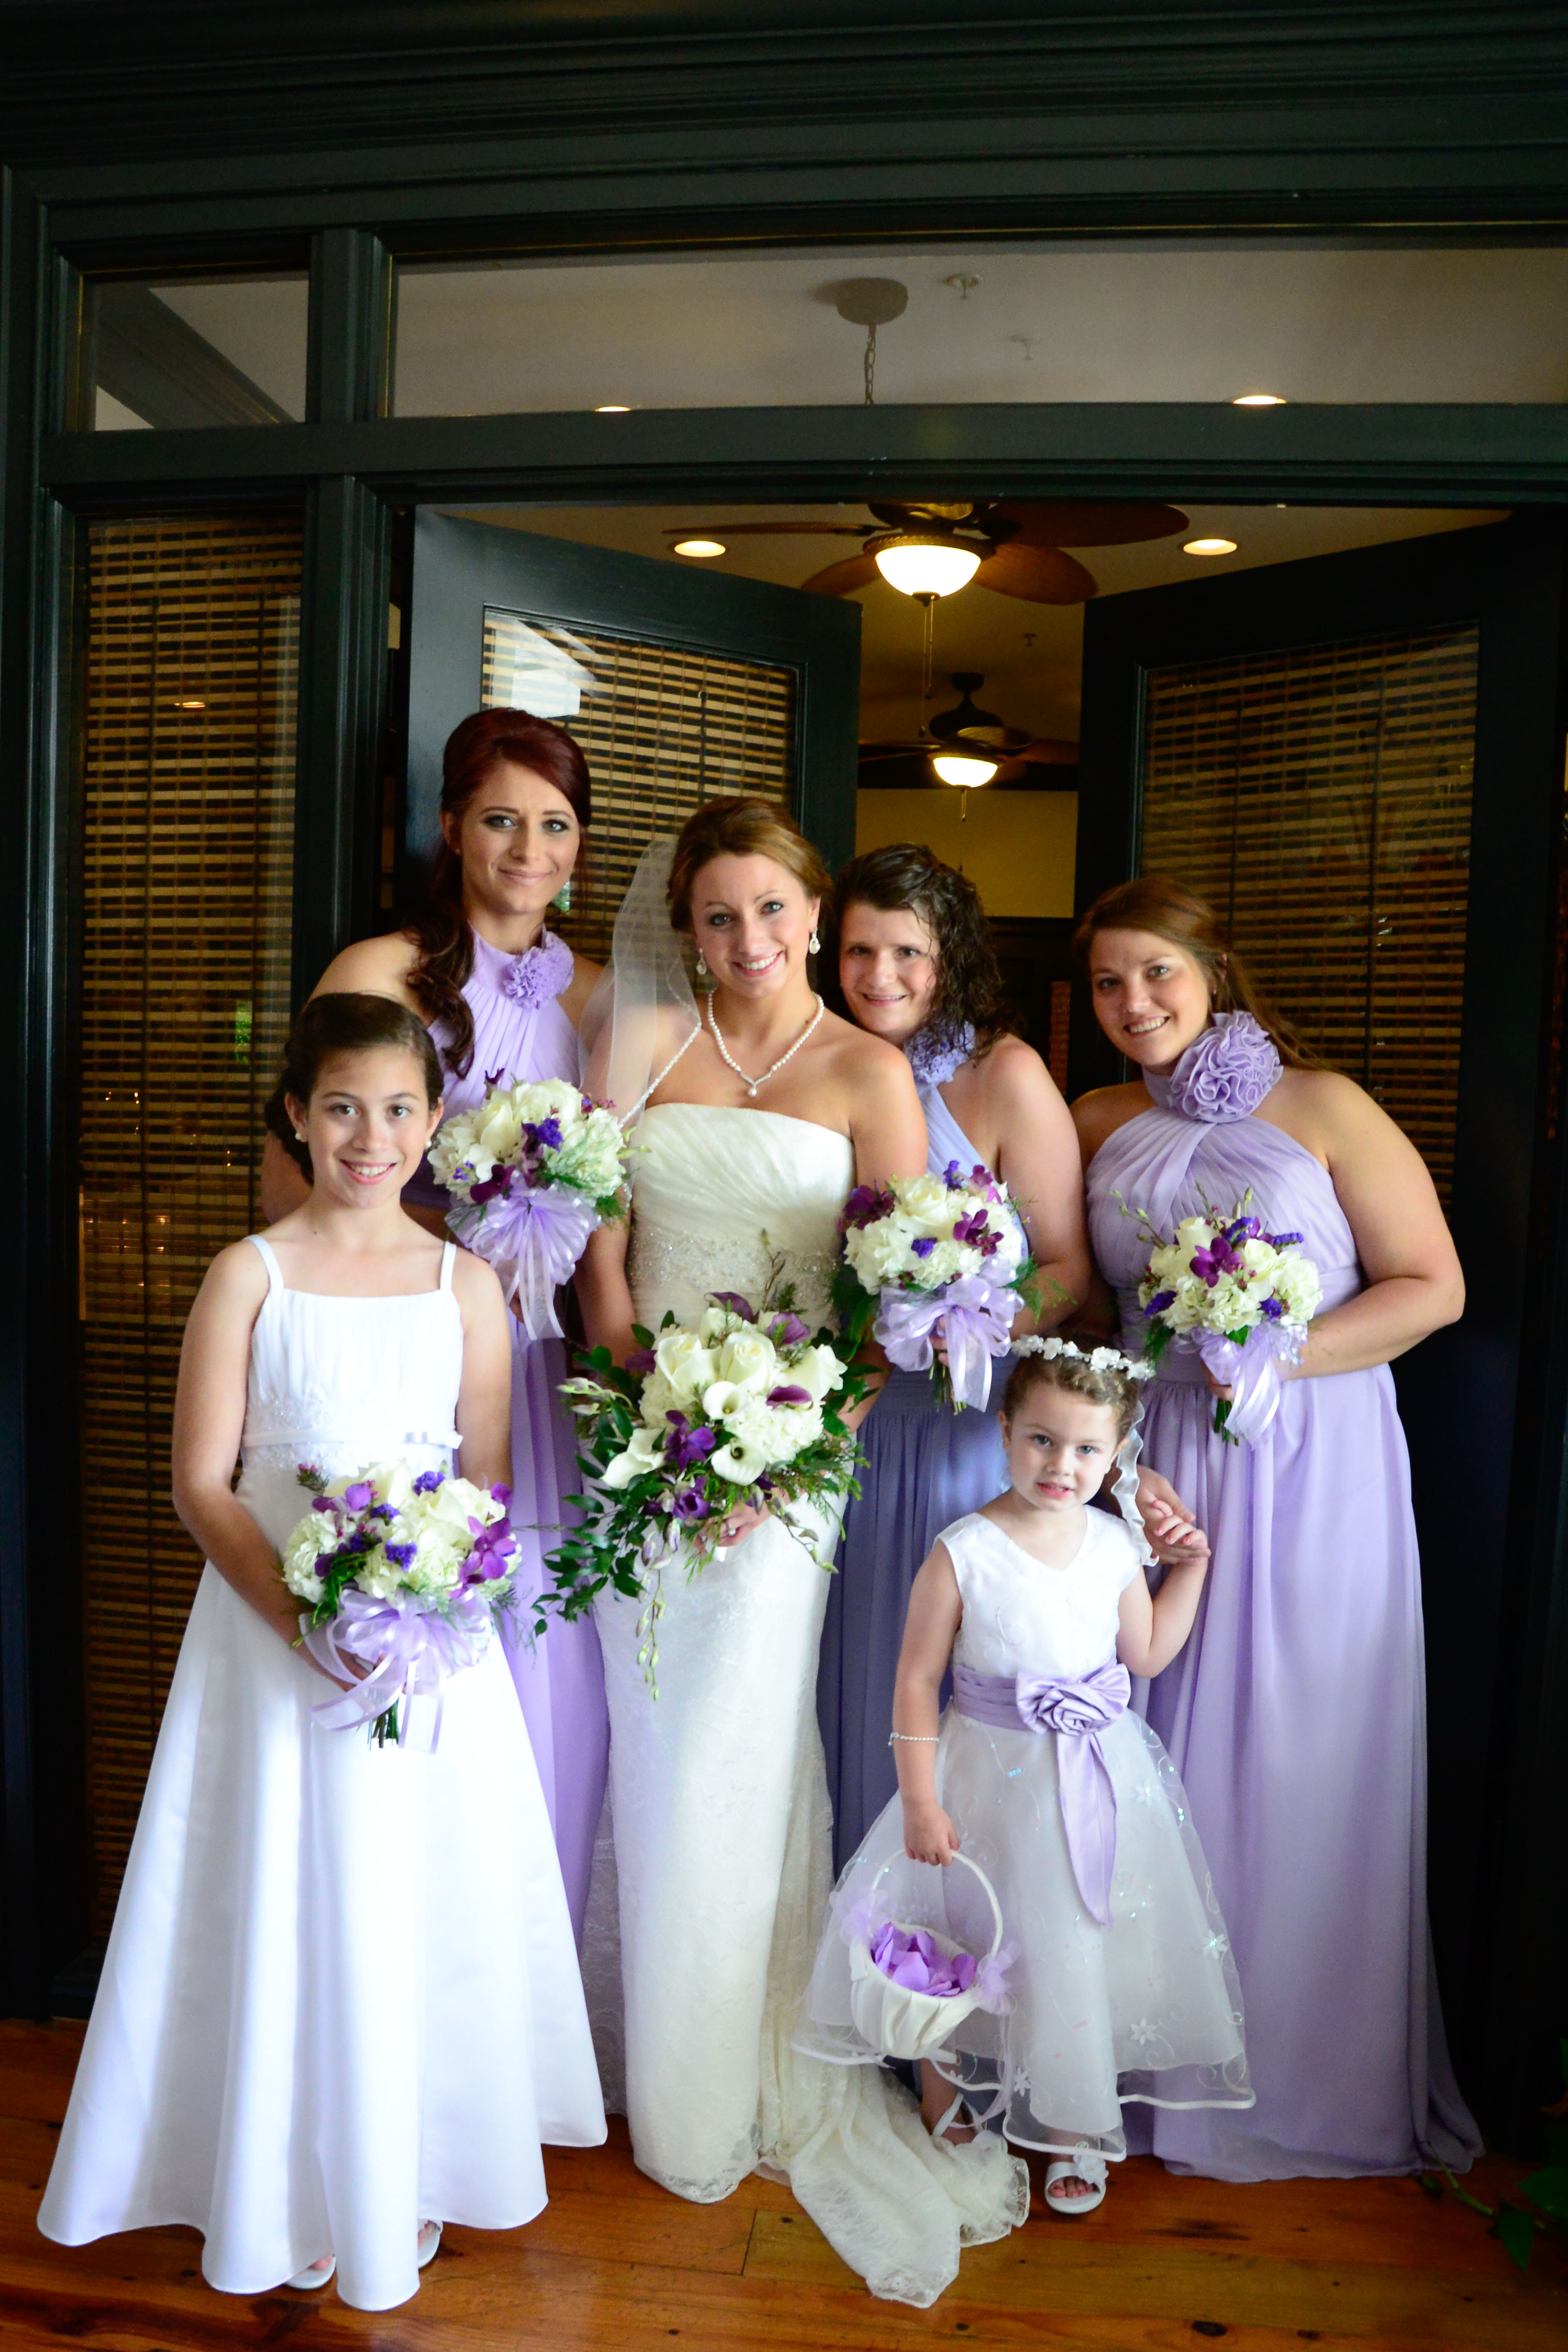 The Bridesmaids were in lilac full length dresses with tropical inspired bouquets by The Floral Case.